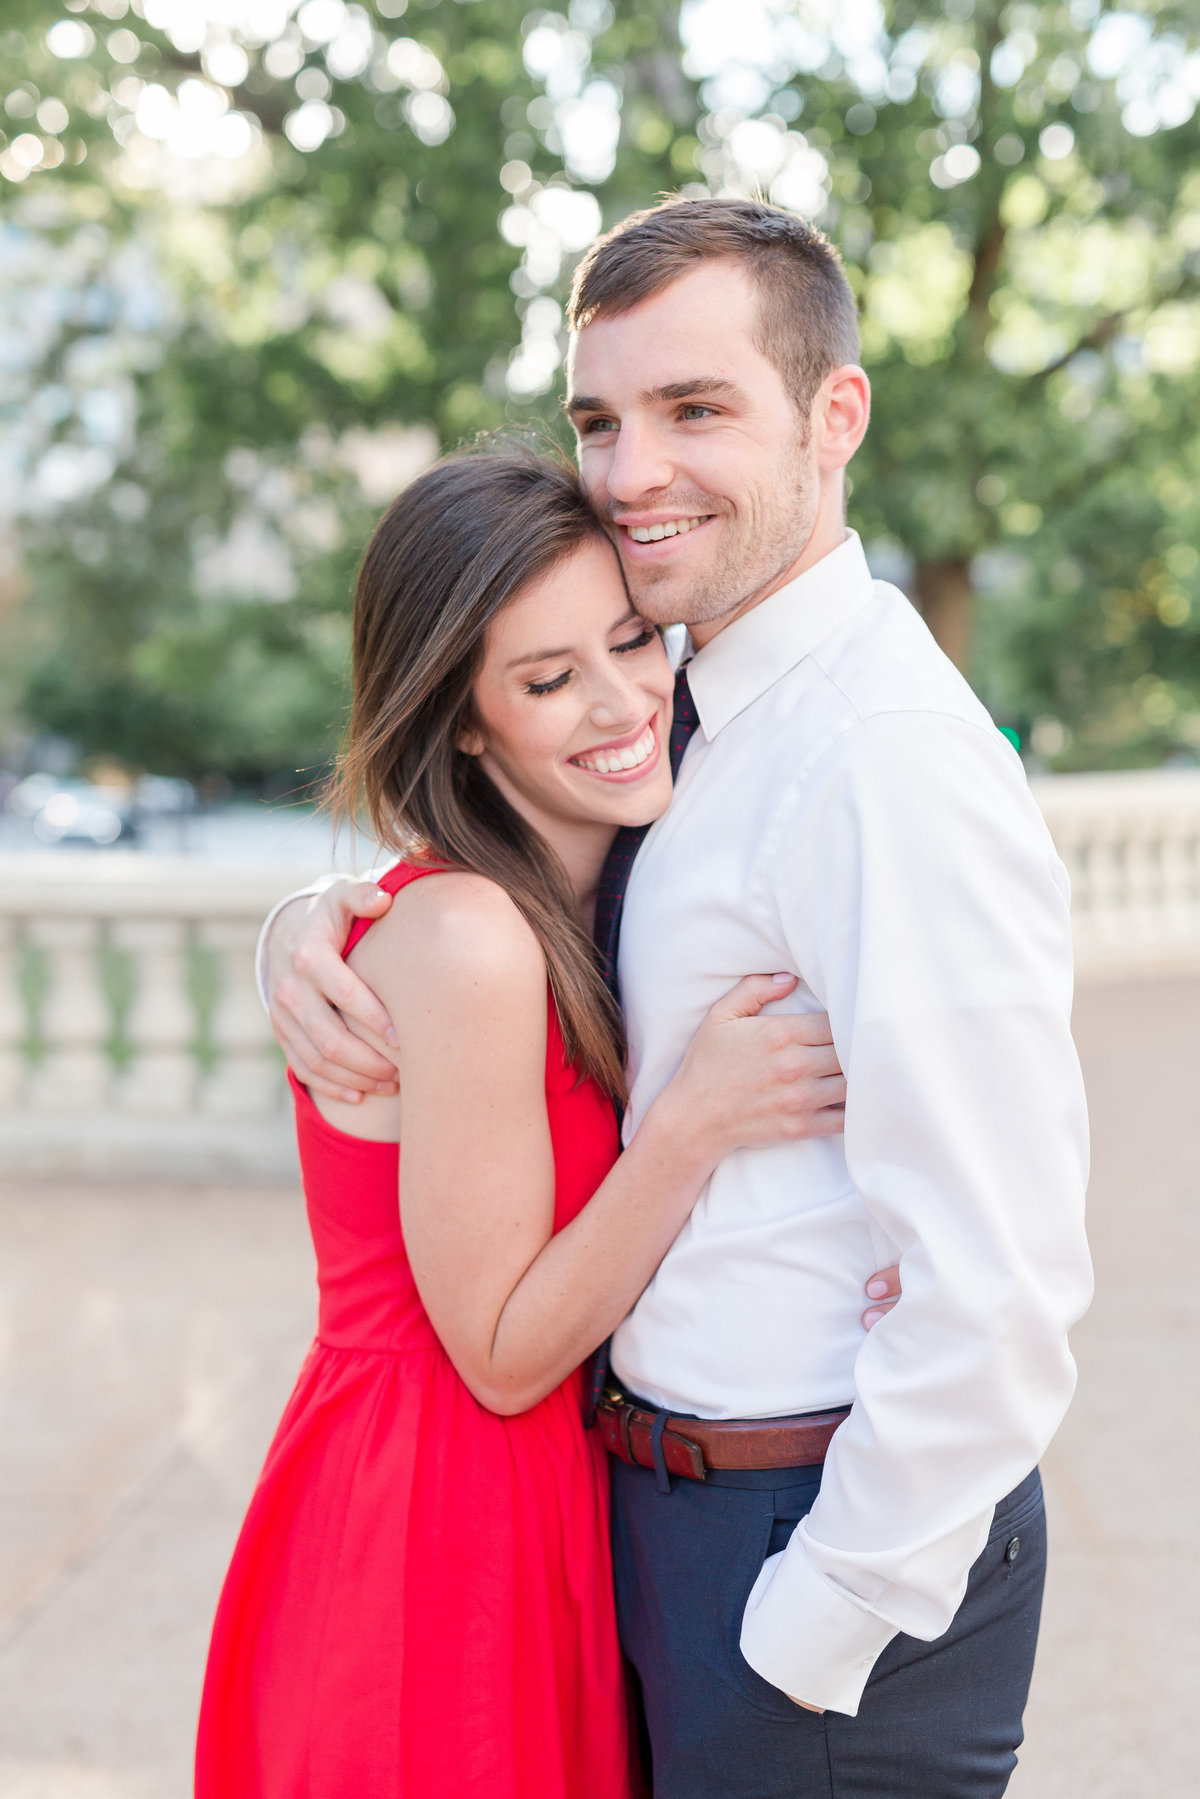 Maison Meredith Photography Wisconsin Engagement Photographer 152